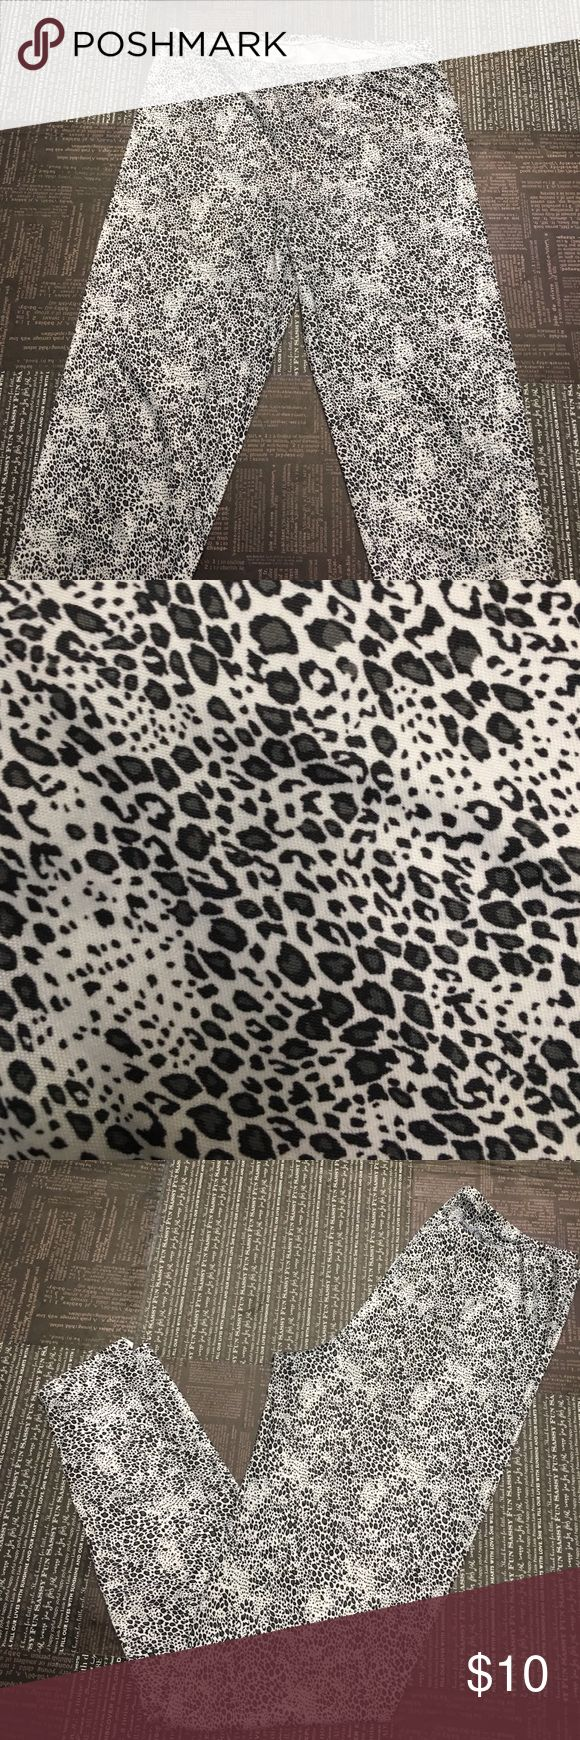 25 legjobb tlet a pinteresten a kvetkezvel kapcsolatban leopard print leggings cuddlduds staywarm leopard print leggings in size medium cuddlduds pants leggings bankloansurffo Choice Image